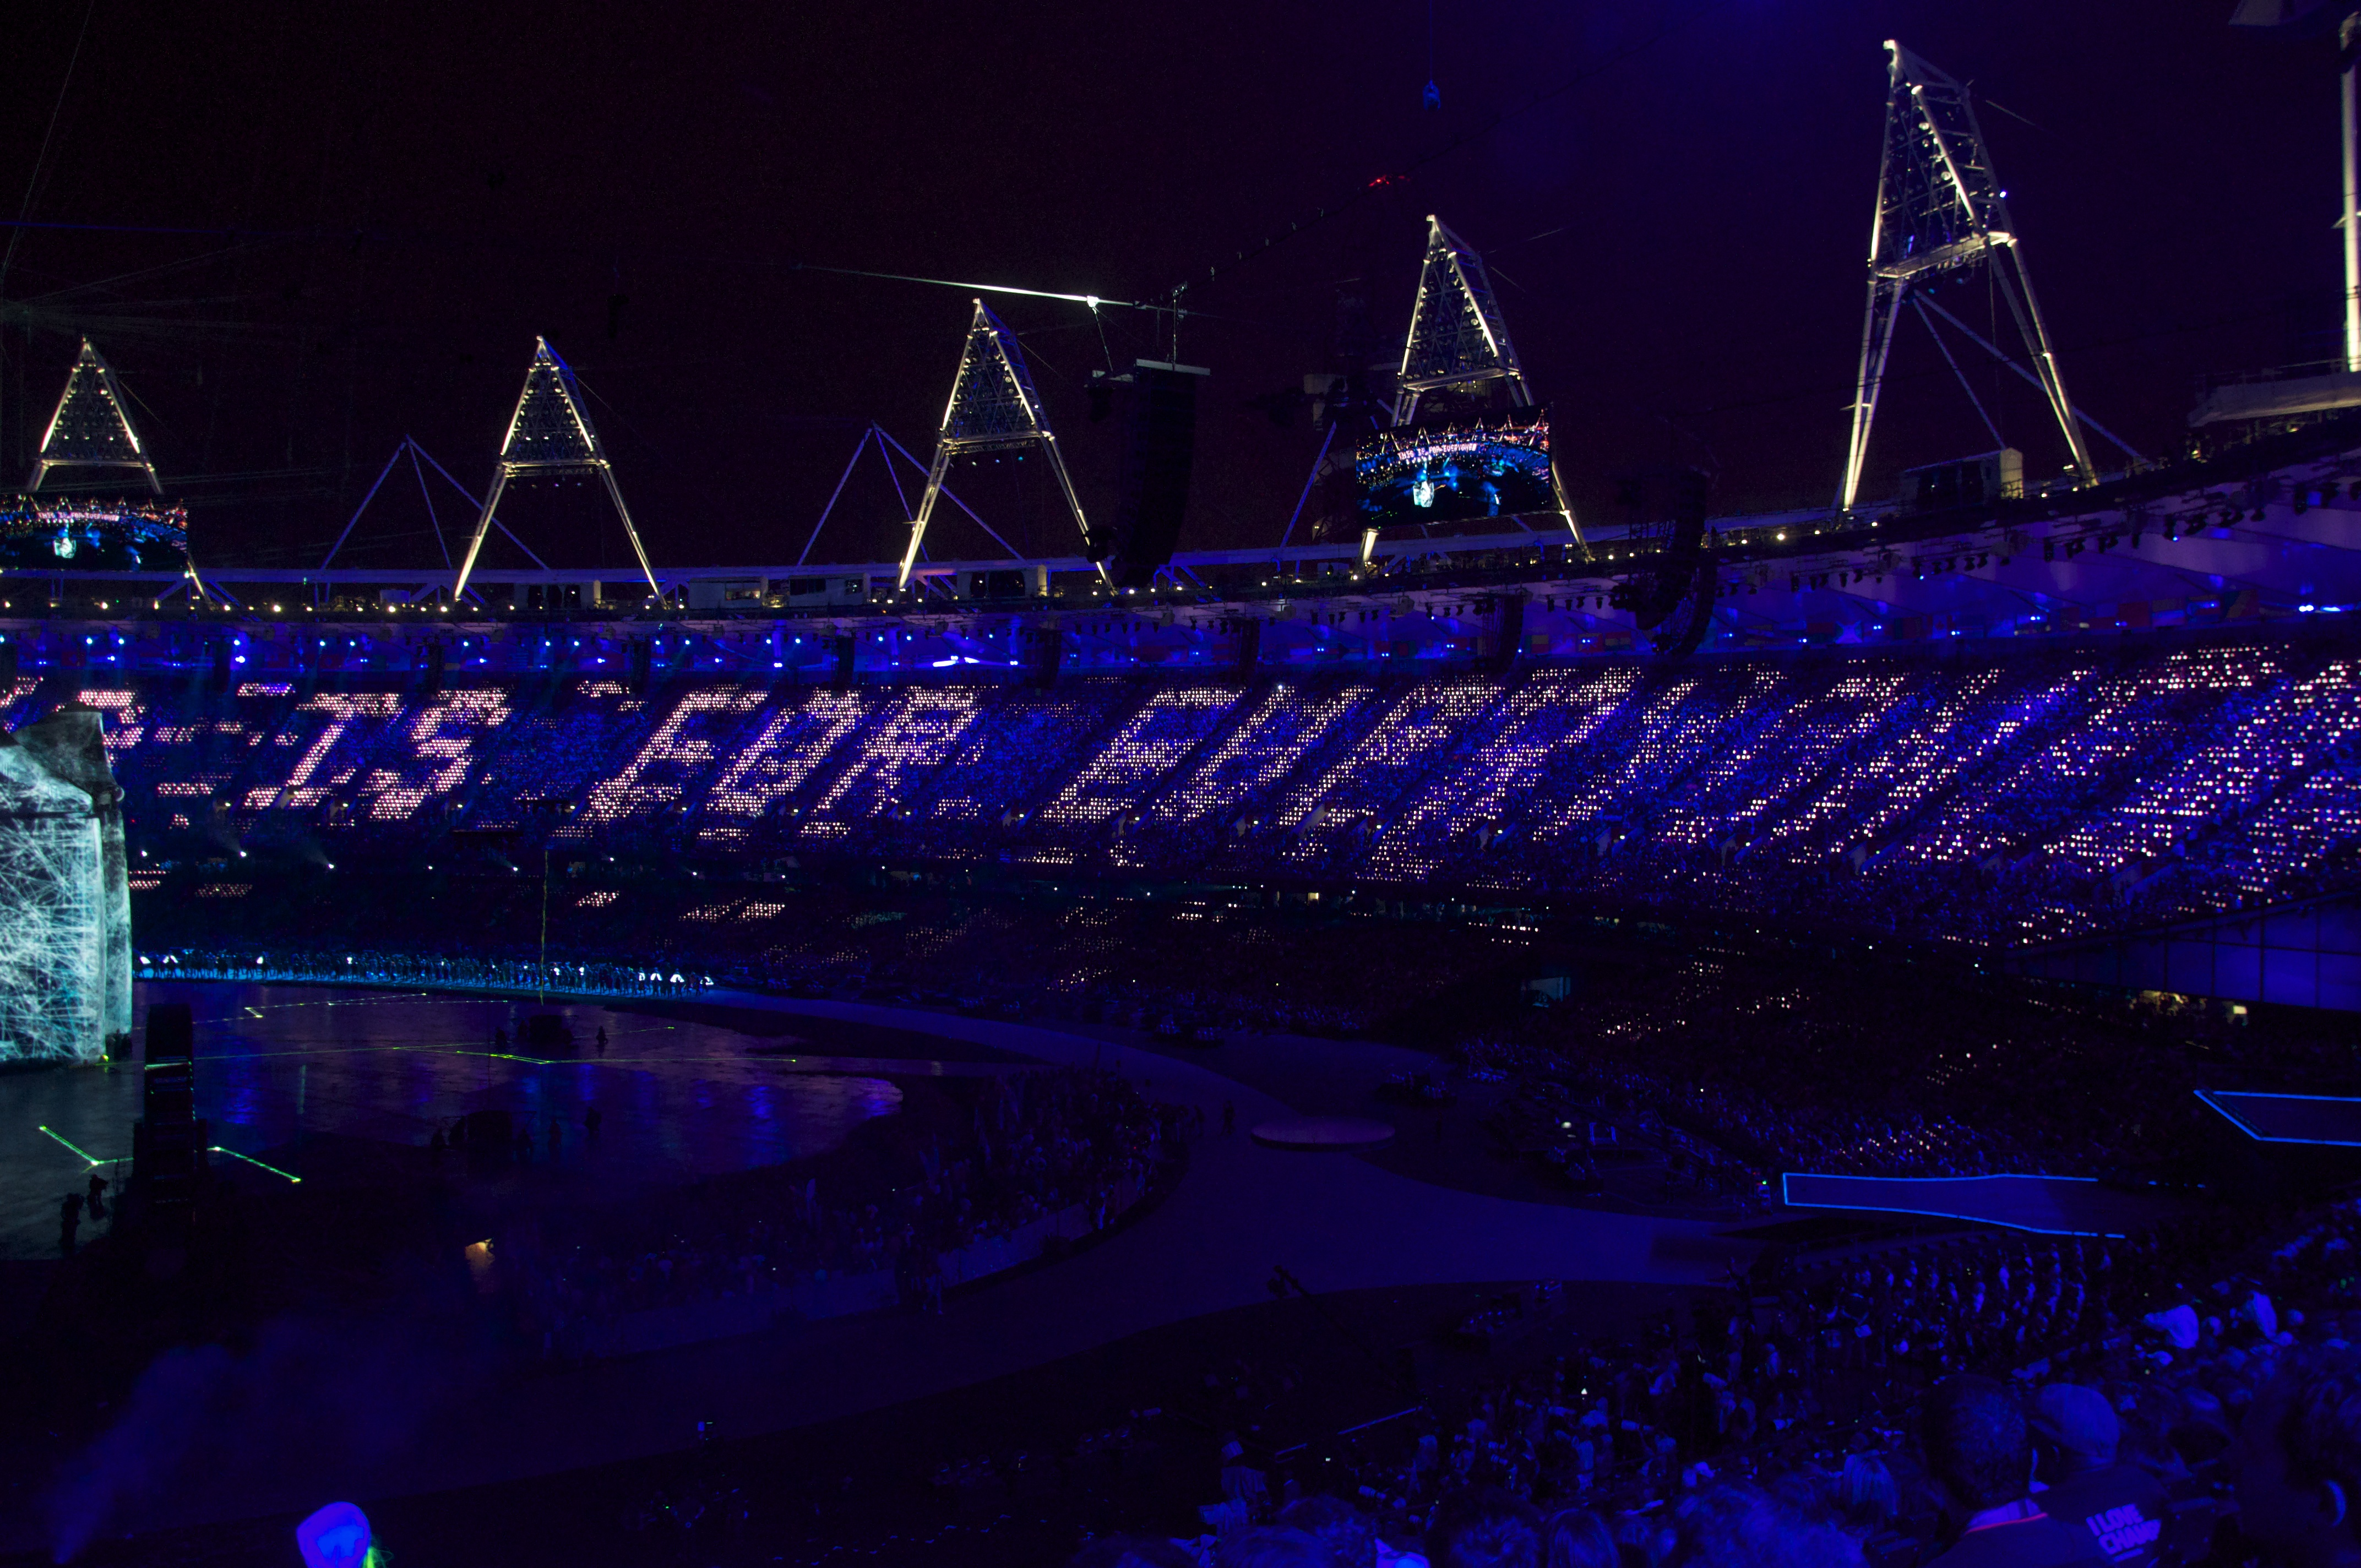 """THIS IS FOR EVERYONE"" - Tim Berners-Lee at the 2012 Olympics"